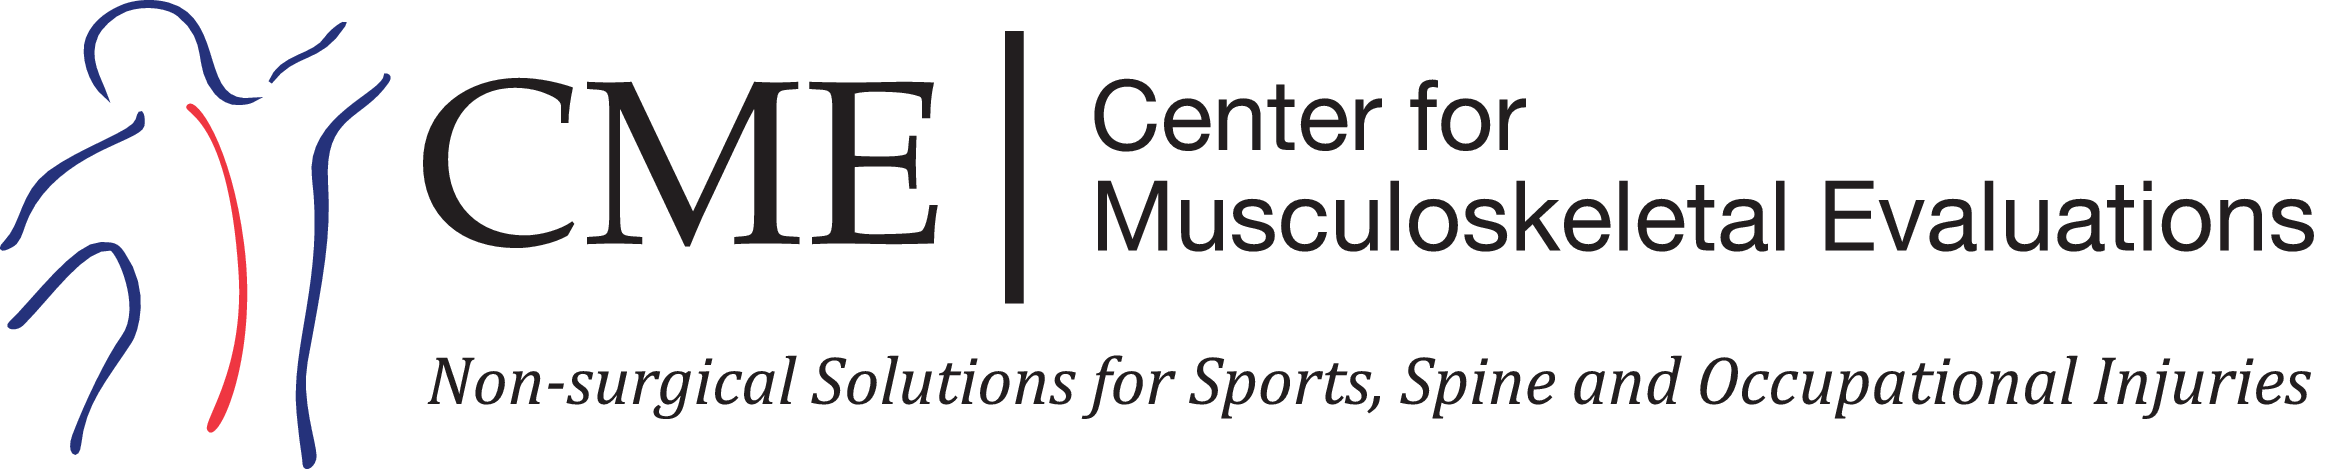 Edward I Dagher MD | Center for Musculoskeletal Evaluations